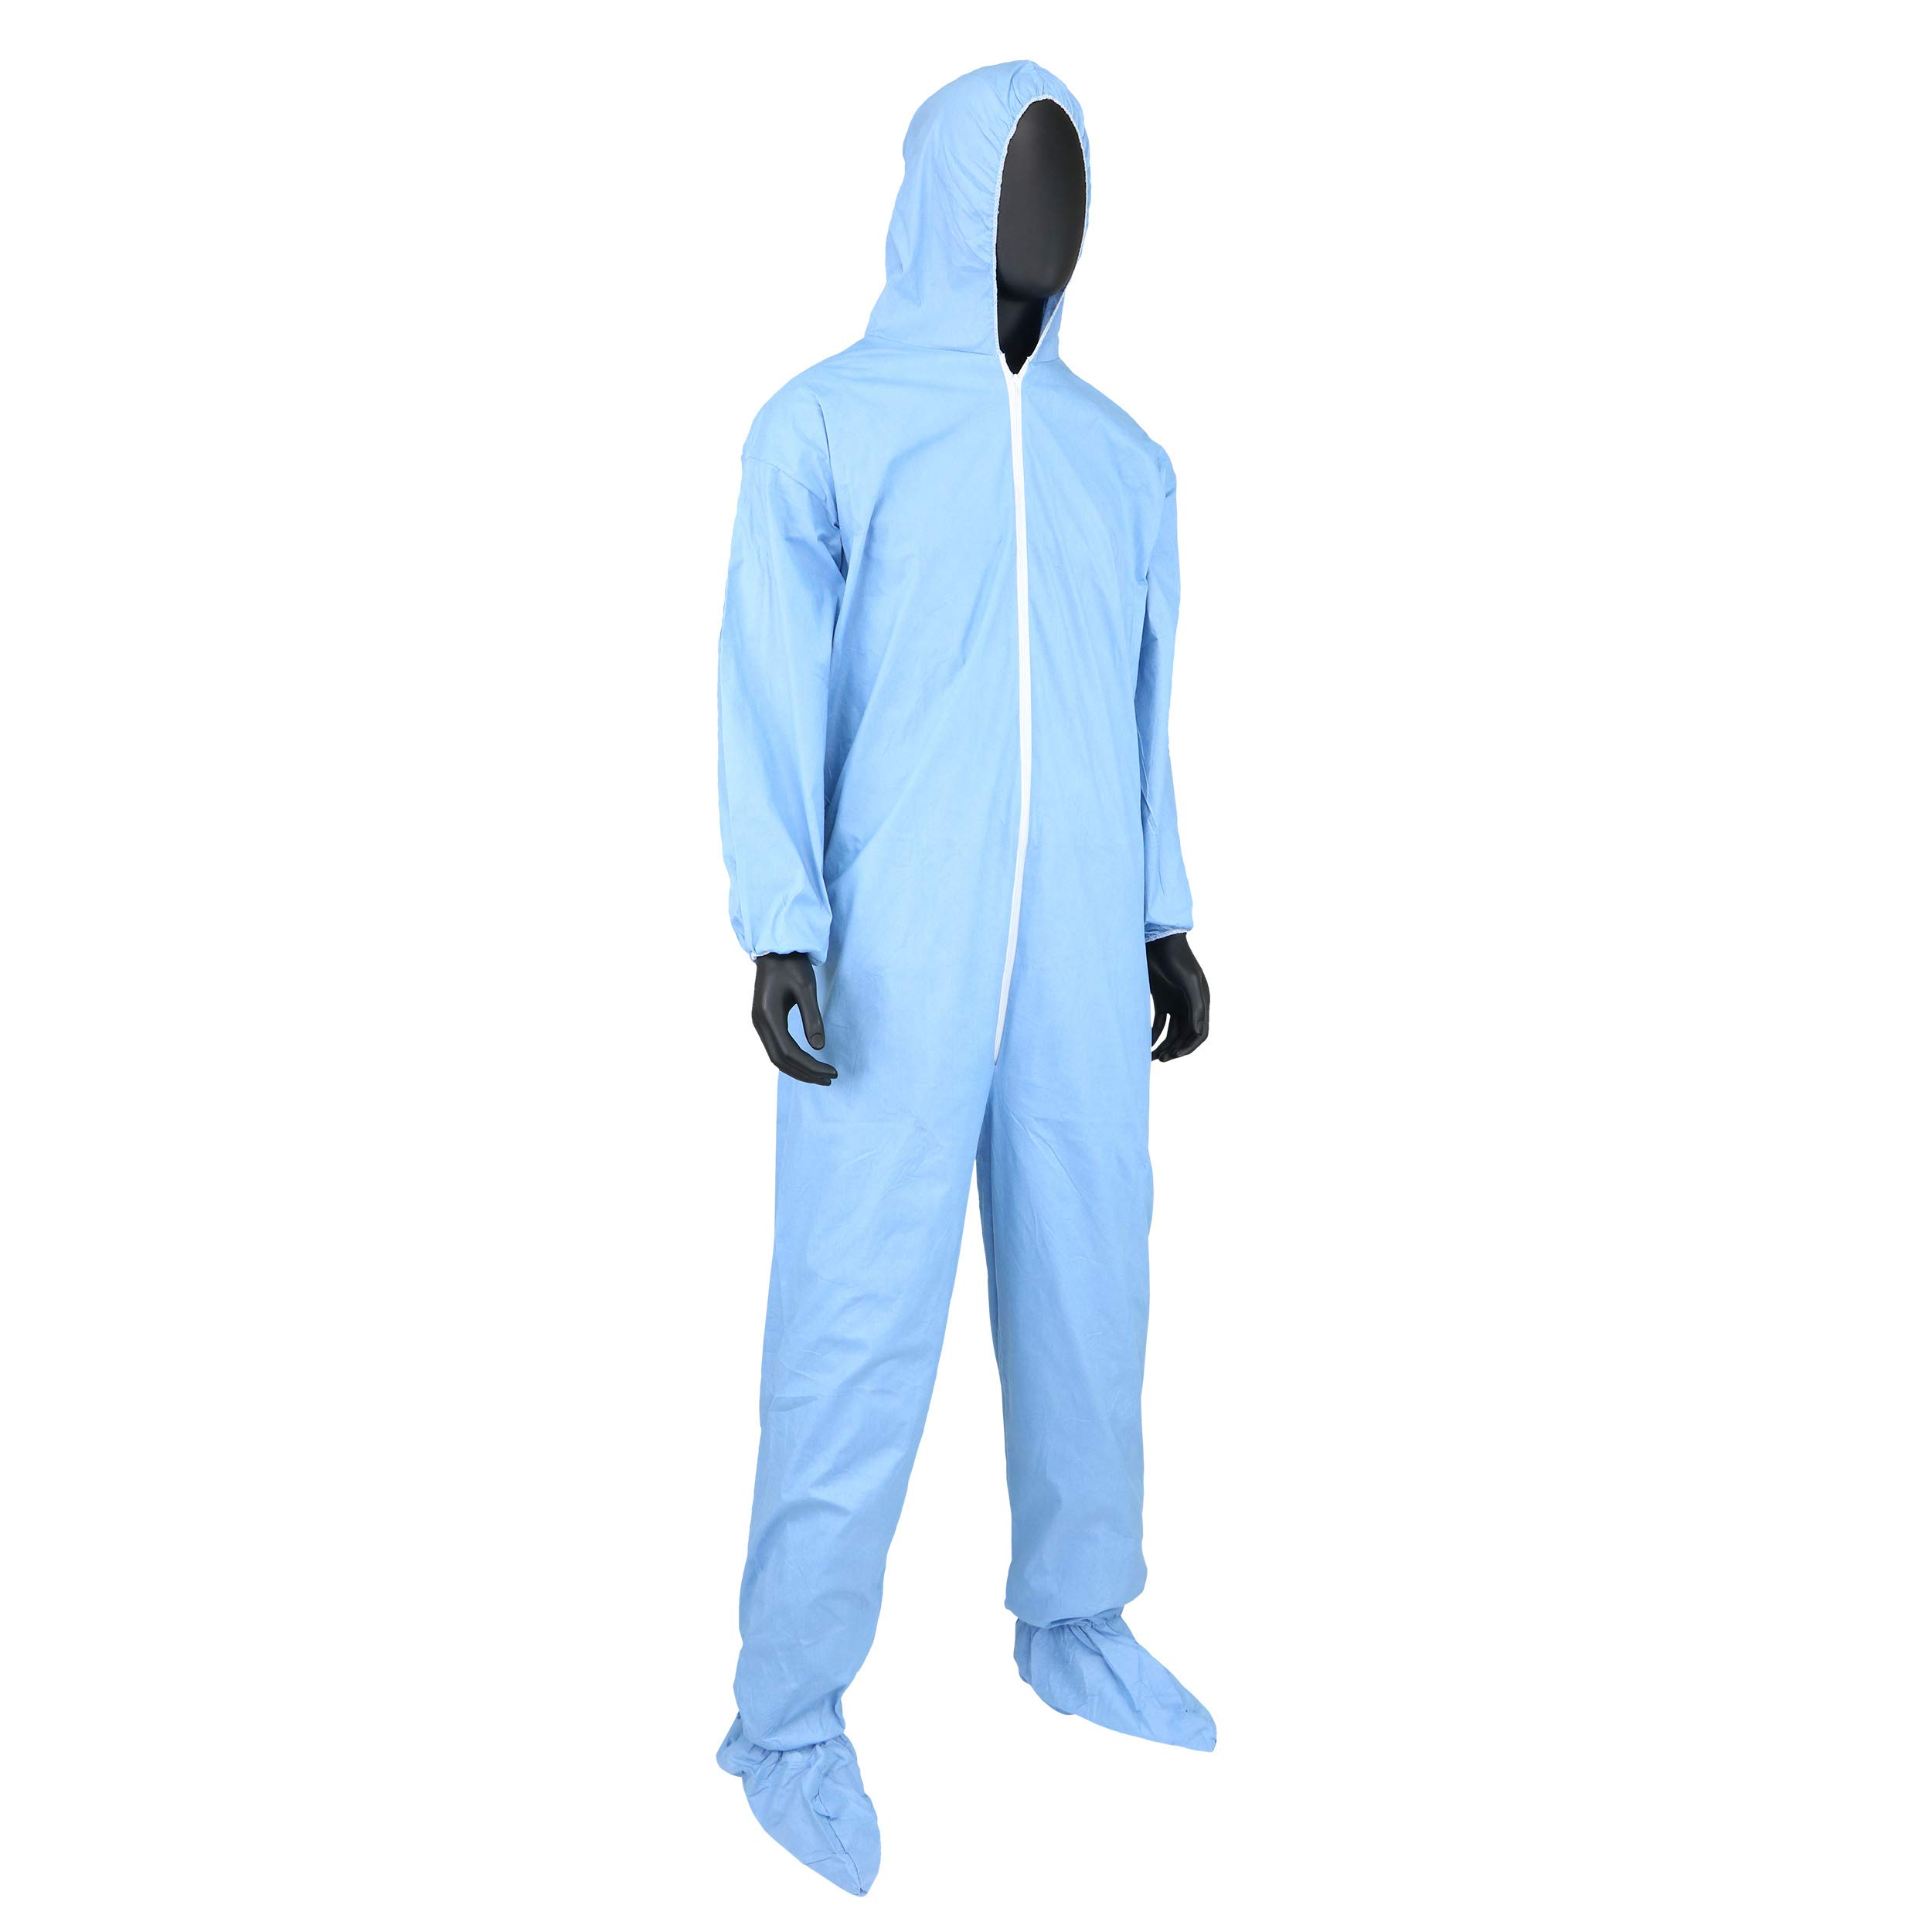 West Chester 3109/XL Posi FR Coverall Hood, Boot, Elastic Wrist & Ankle, XL, Blue (Box of 25) by West Chester (Image #6)